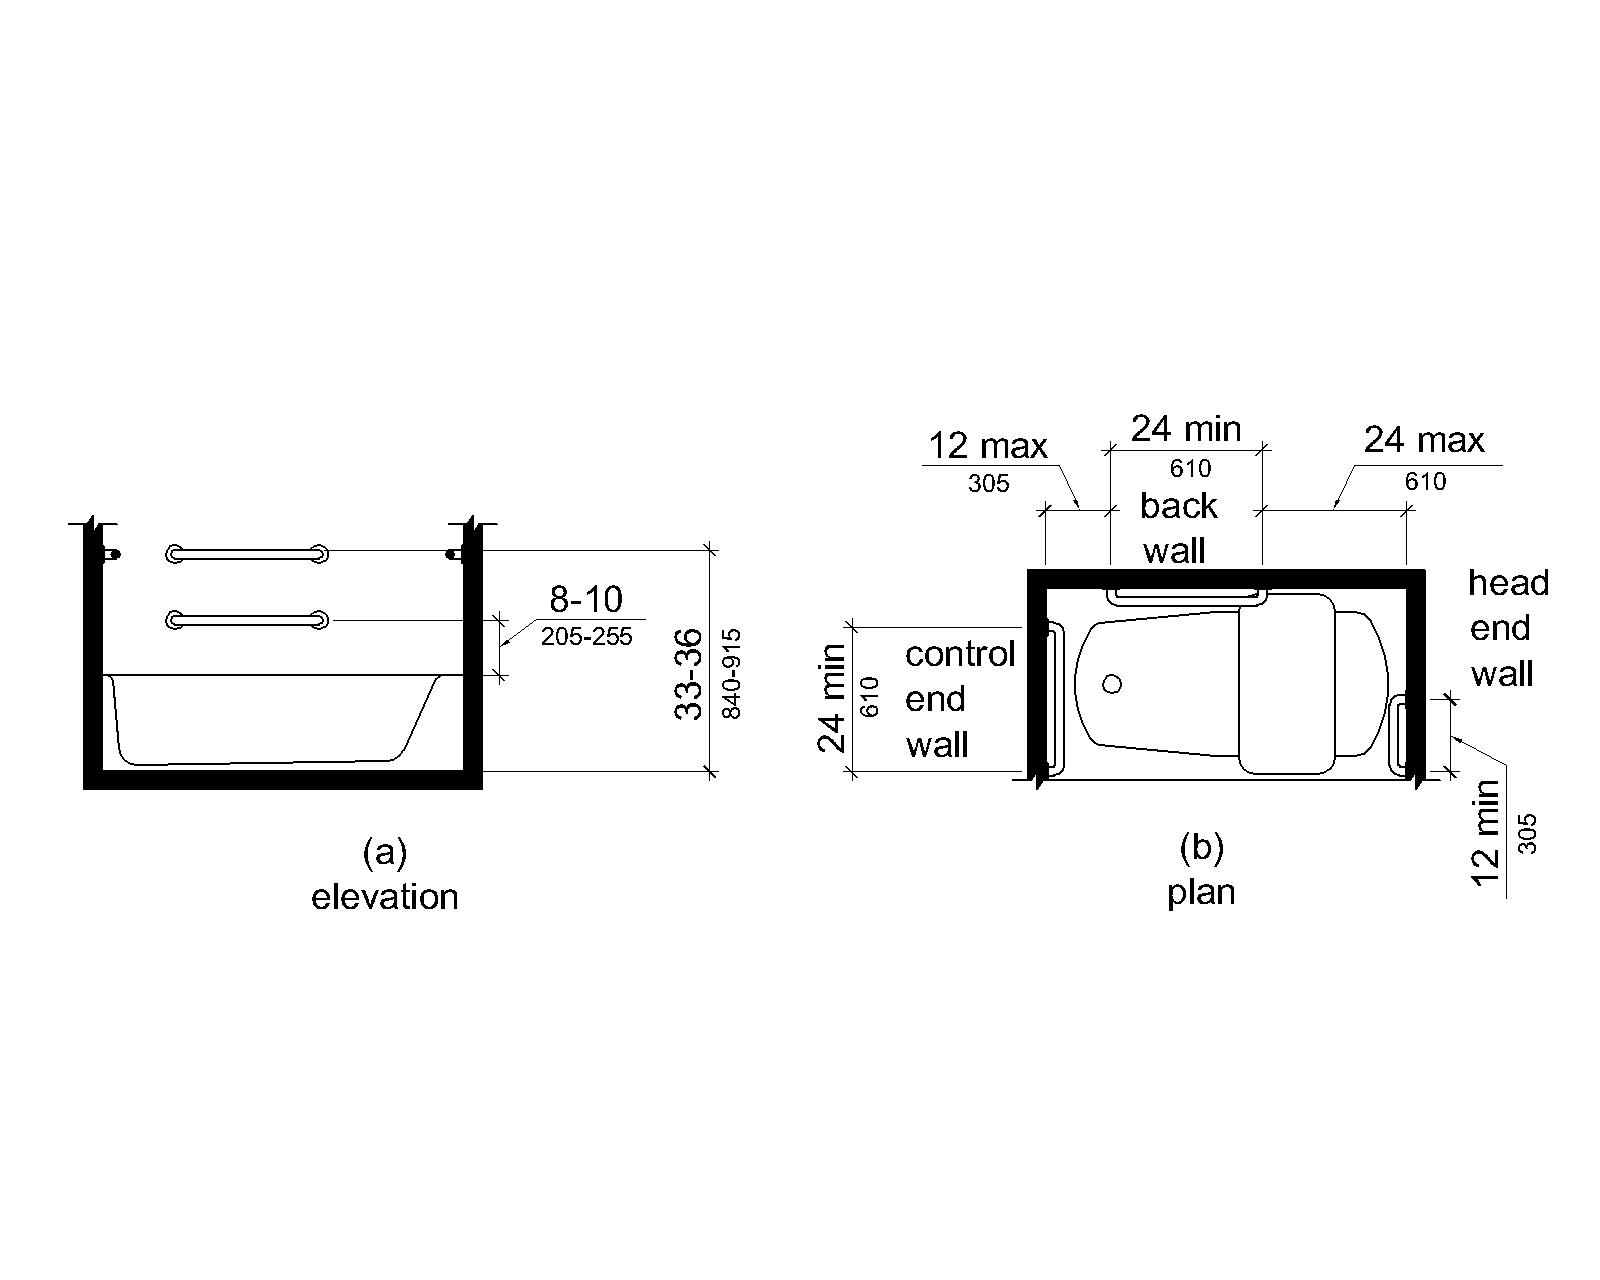 Figure (a) is an elevation drawing showing rear grab bars, one mounted 33 to 36 inches (840 to 915 mm) above the finish deck surface, and one mounted 8 to 10 inches (205 to 255 mm) above the tub rim. Figure (b) is a plan view showing a grab bar on the foot (control) end wall 24 inches (610 mm) long minimum installed at the front edge of the tub. Rear grab bars are 24 inches (610 mm) long minimum and are mounted 12 inches (305 mm) maximum from the foot (control) end wall and 24 inches (610 mm) maximum from the head end wall. A grab bar 12 inches (305 mm) long minimum is installed on the head end wall at the front edge of the tub.